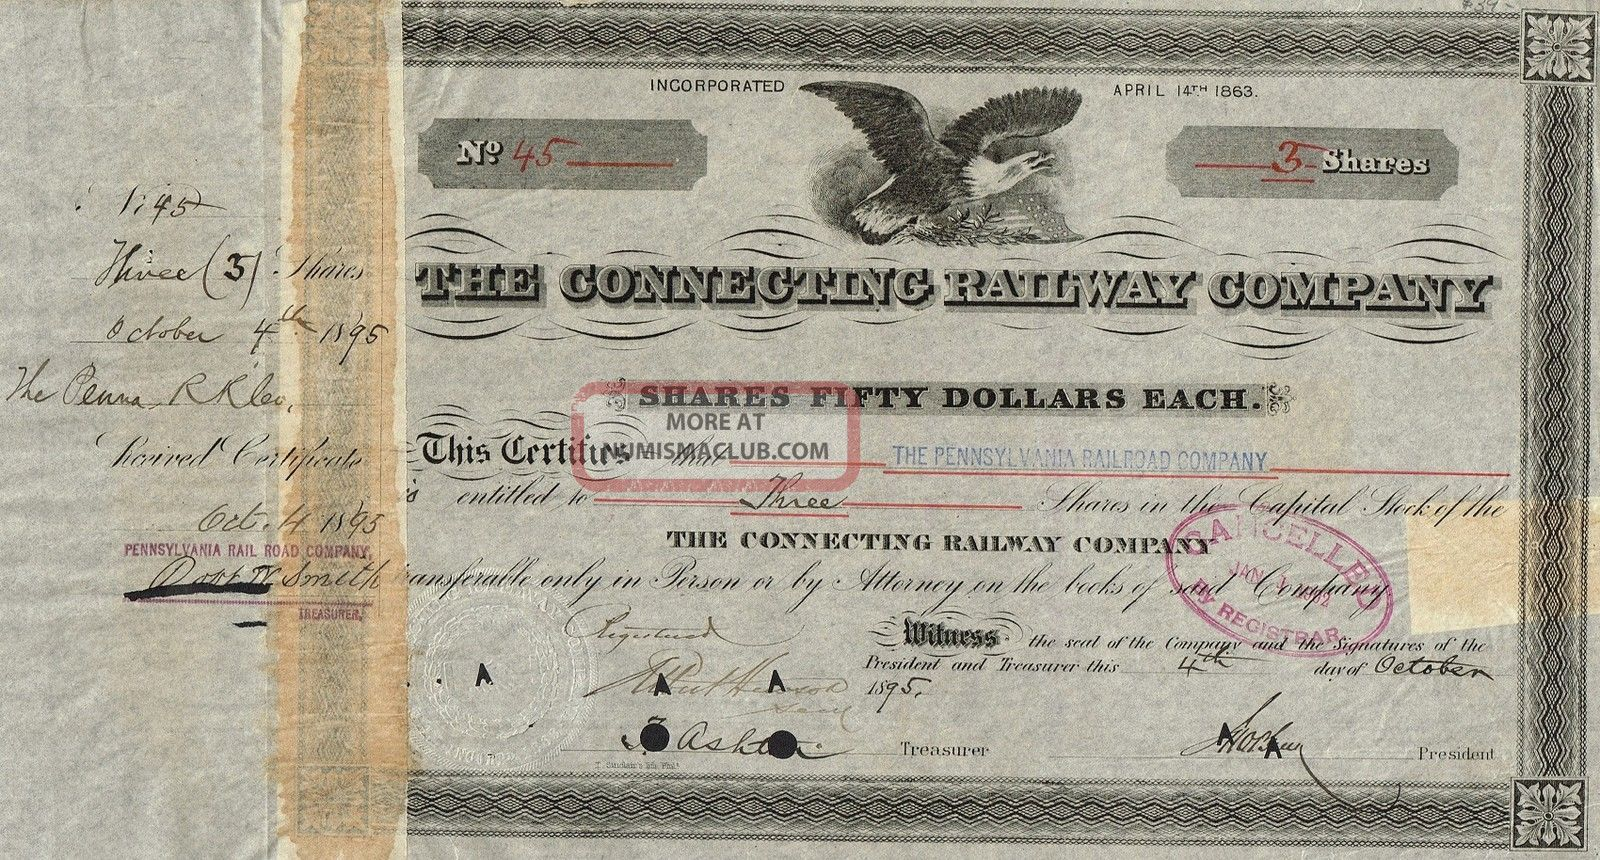 Usa Connecting Railway Company Stock Certificate 1895 World photo